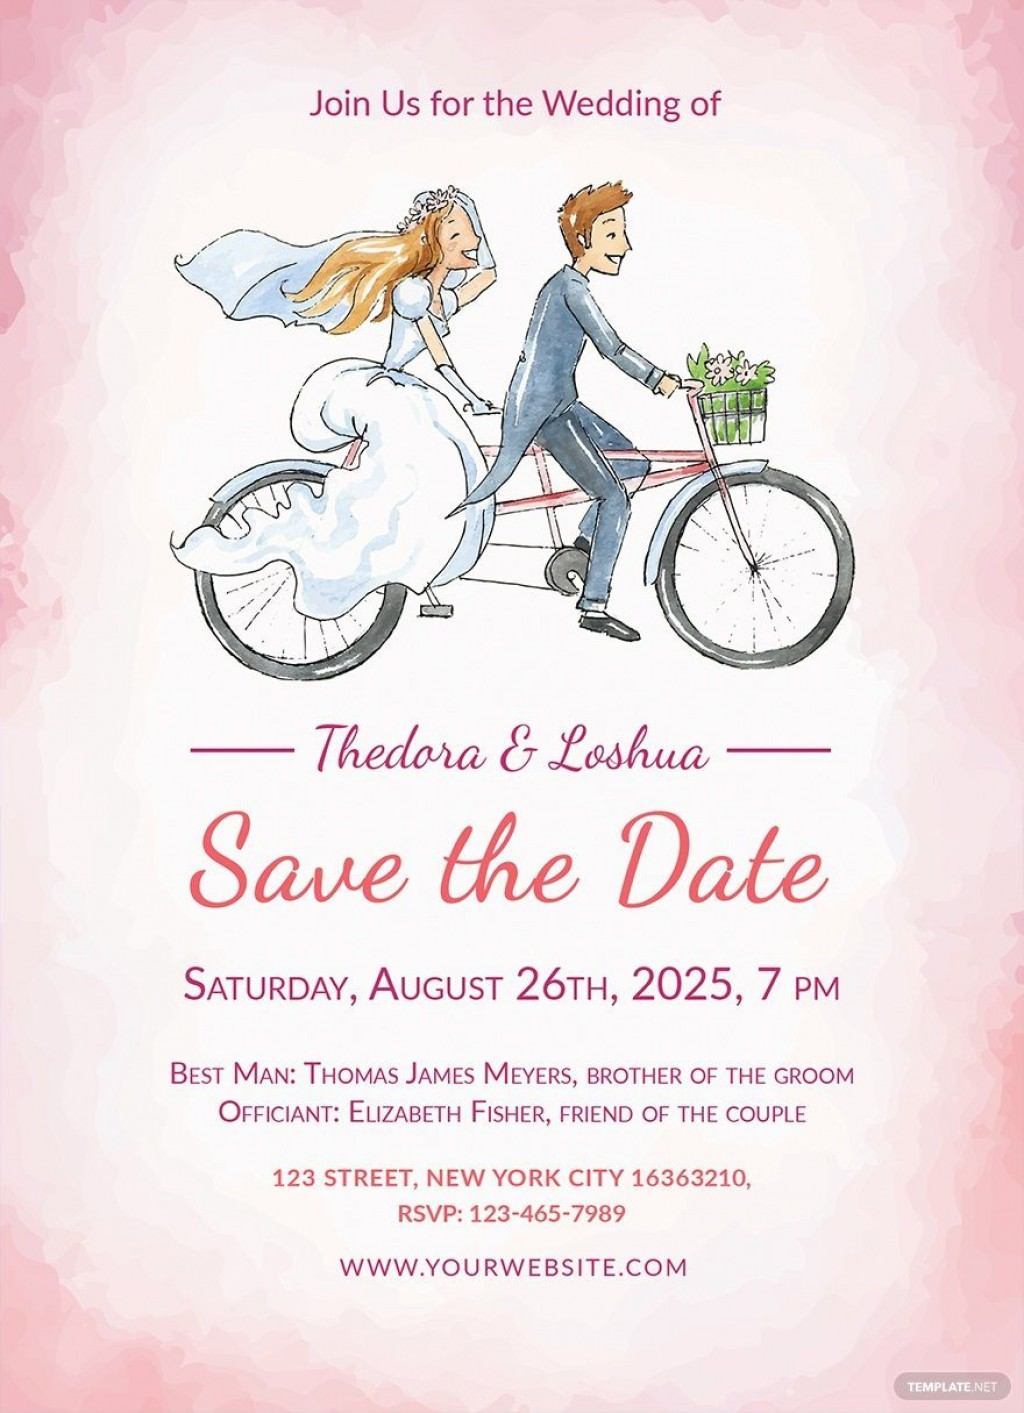 010 Awful Free Wedding Invitation Template For Word 2019 Picture Large